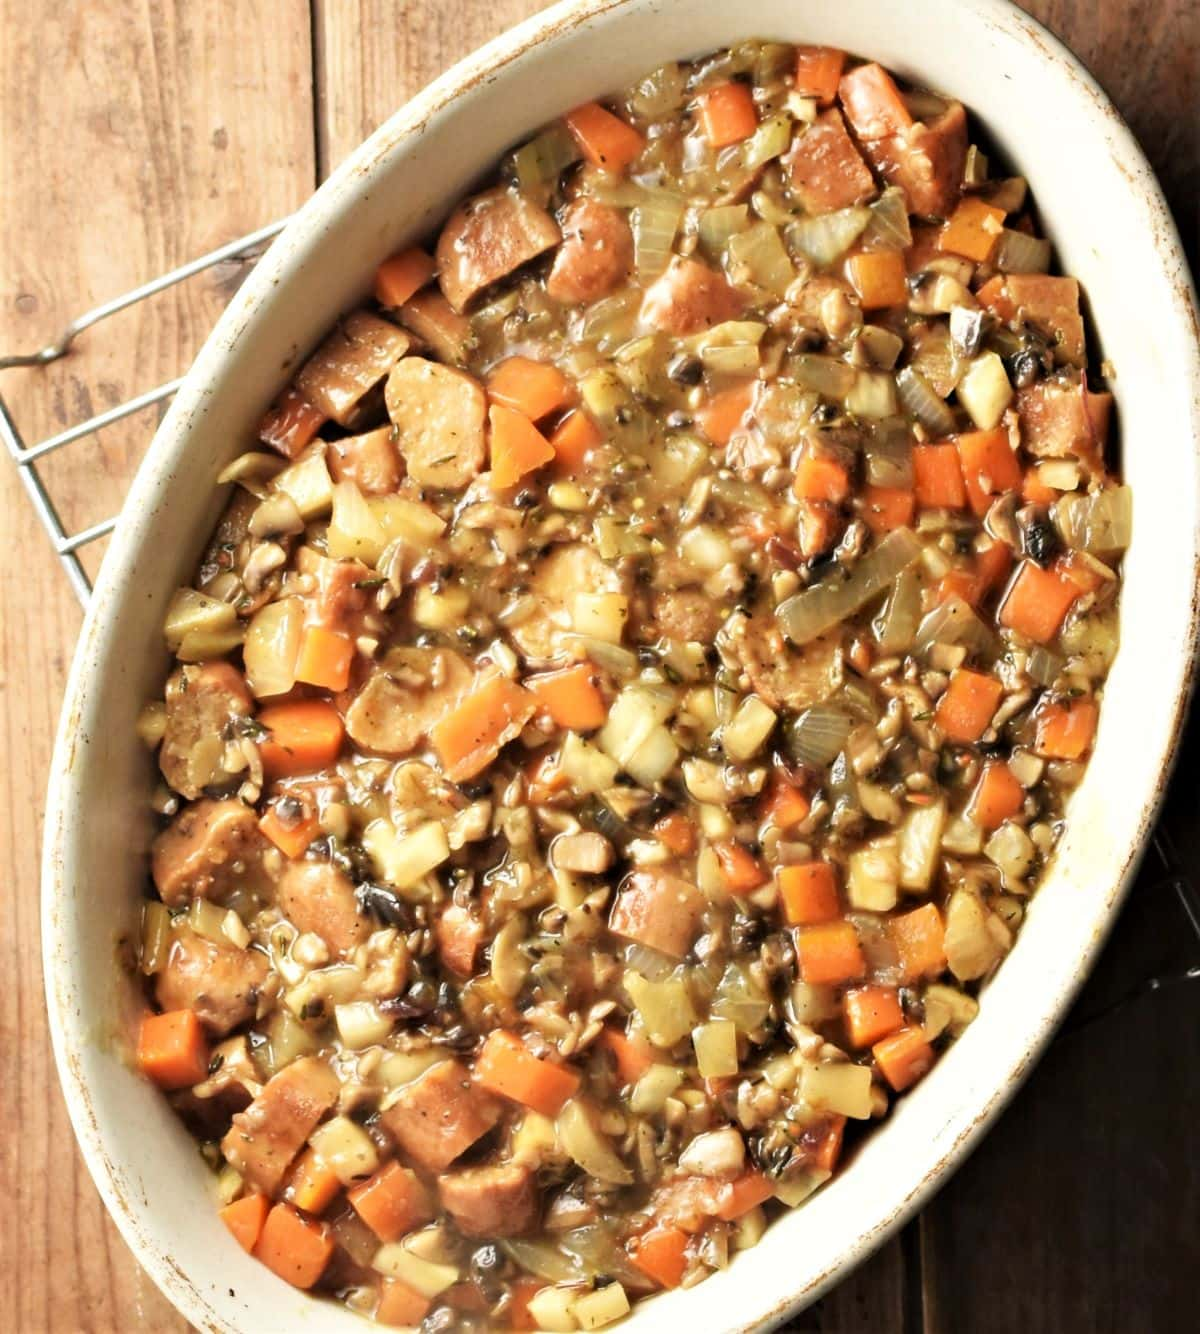 Sausage pie filling mixture inside oval dish.